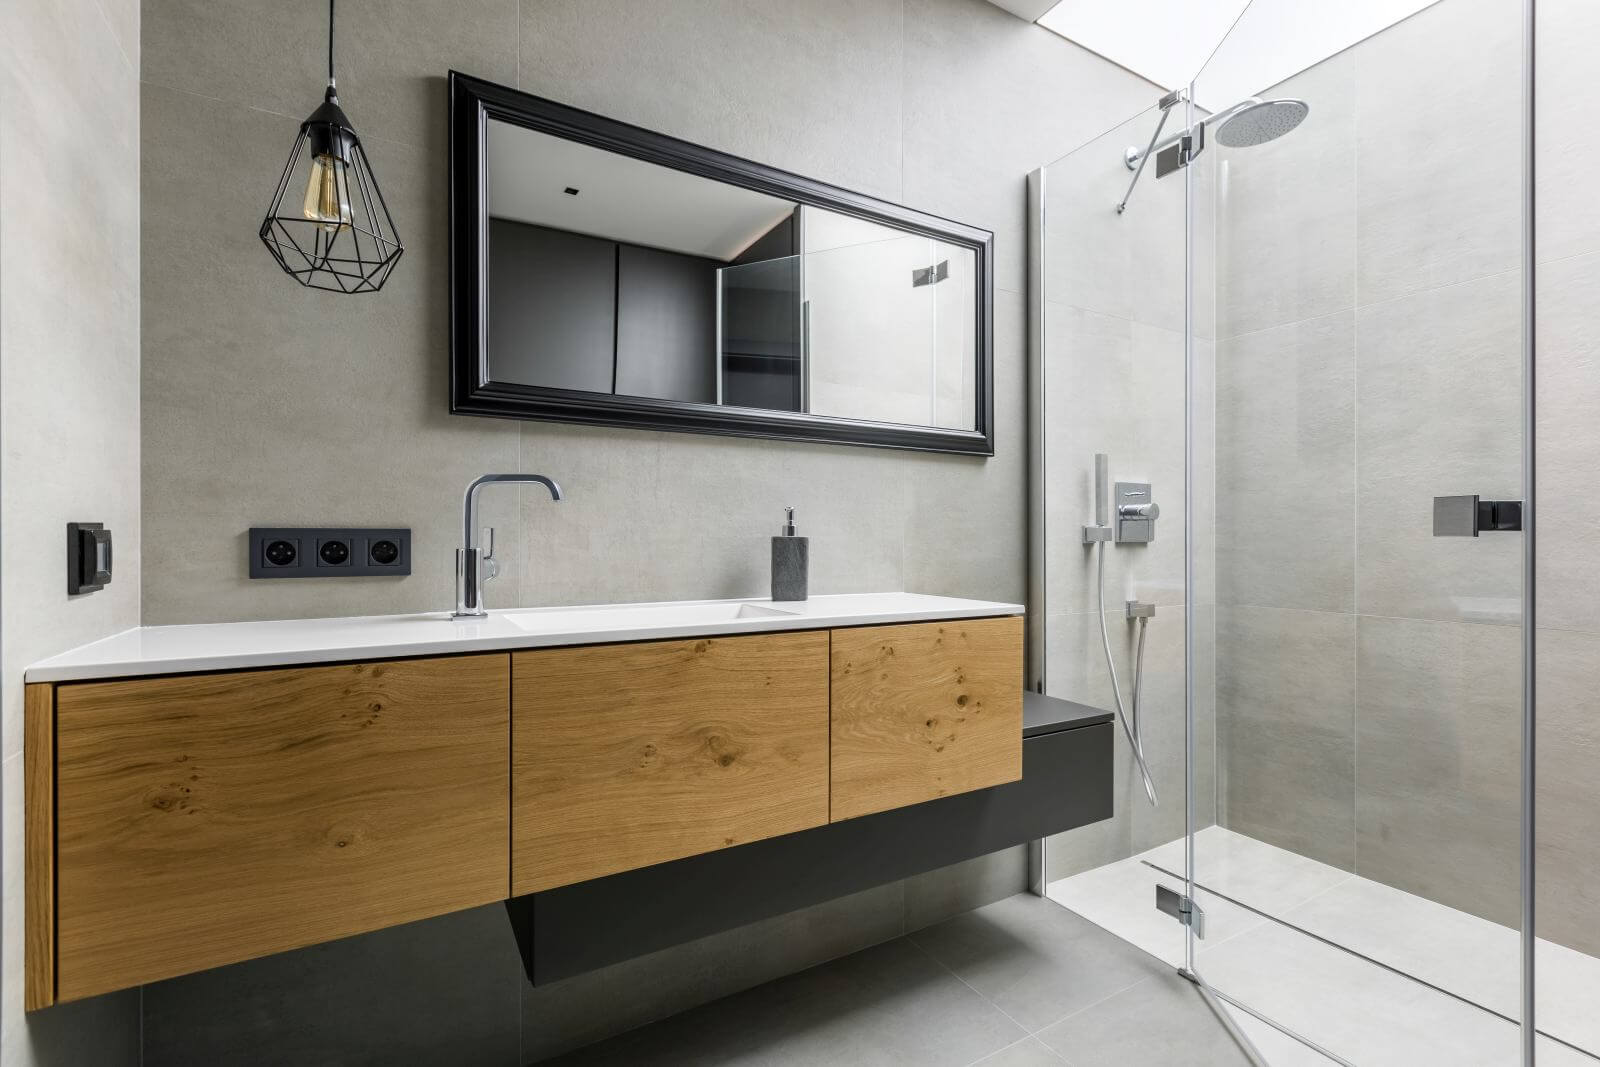 Modern, gray bathroom with walk in shower, mirror and countertop basin